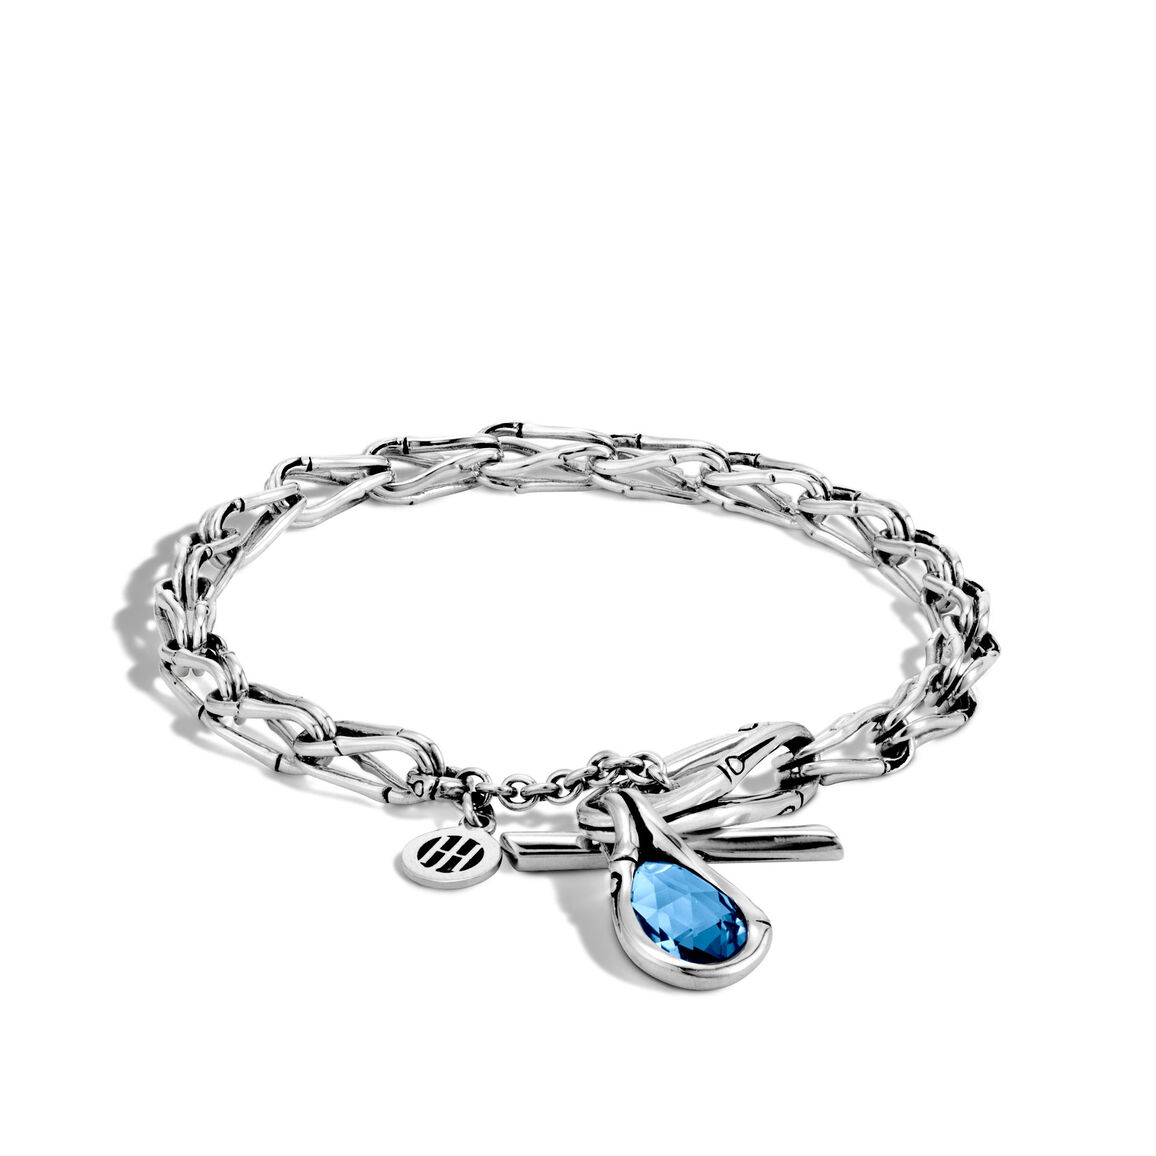 Bamboo 5MM Charm Bracelet in Silver with Gemstone